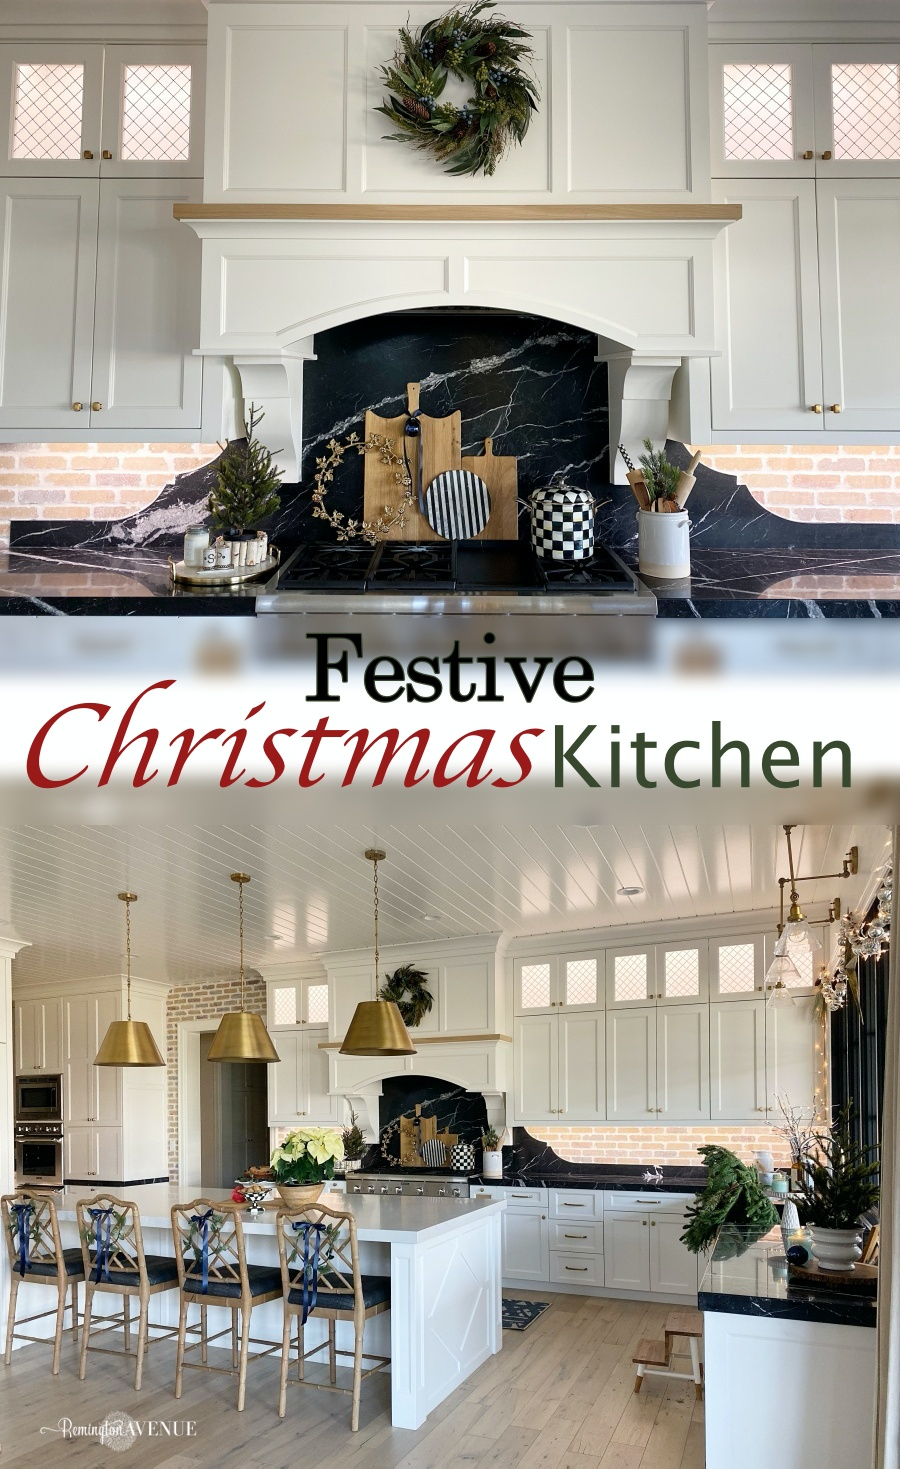 Festive christmas kitchen with fresh greens